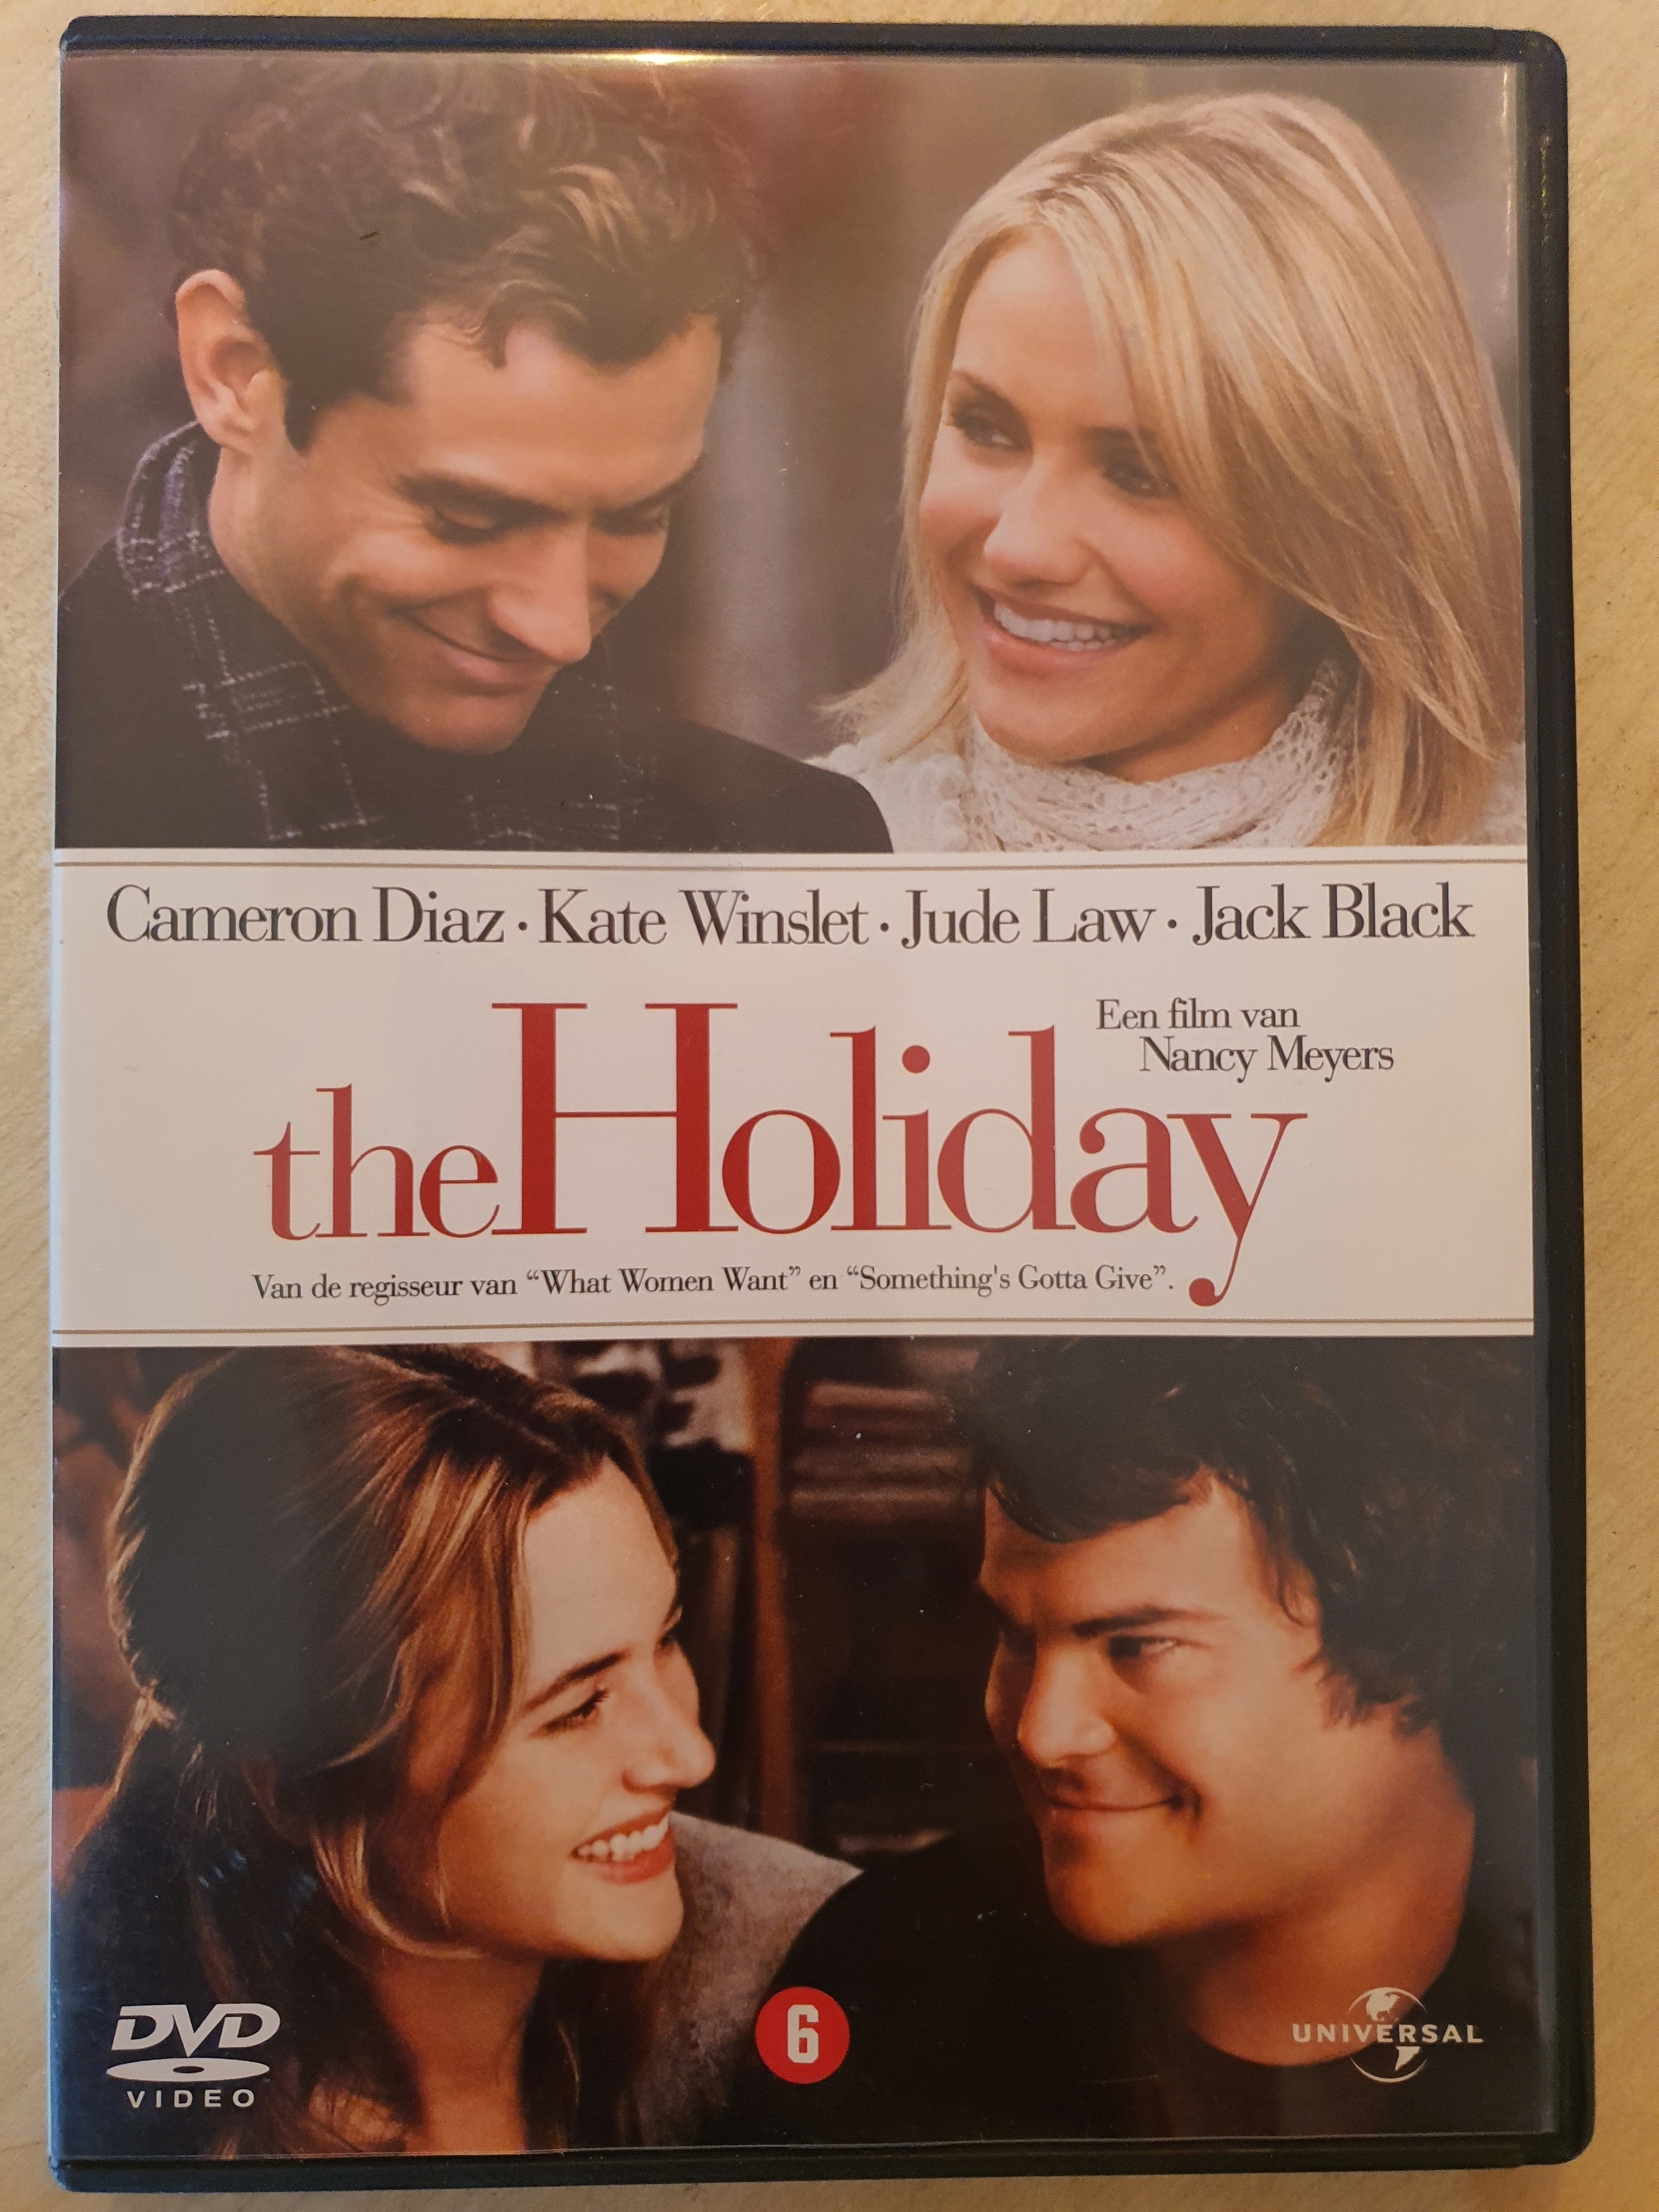 DVD The Holiday kostenlos